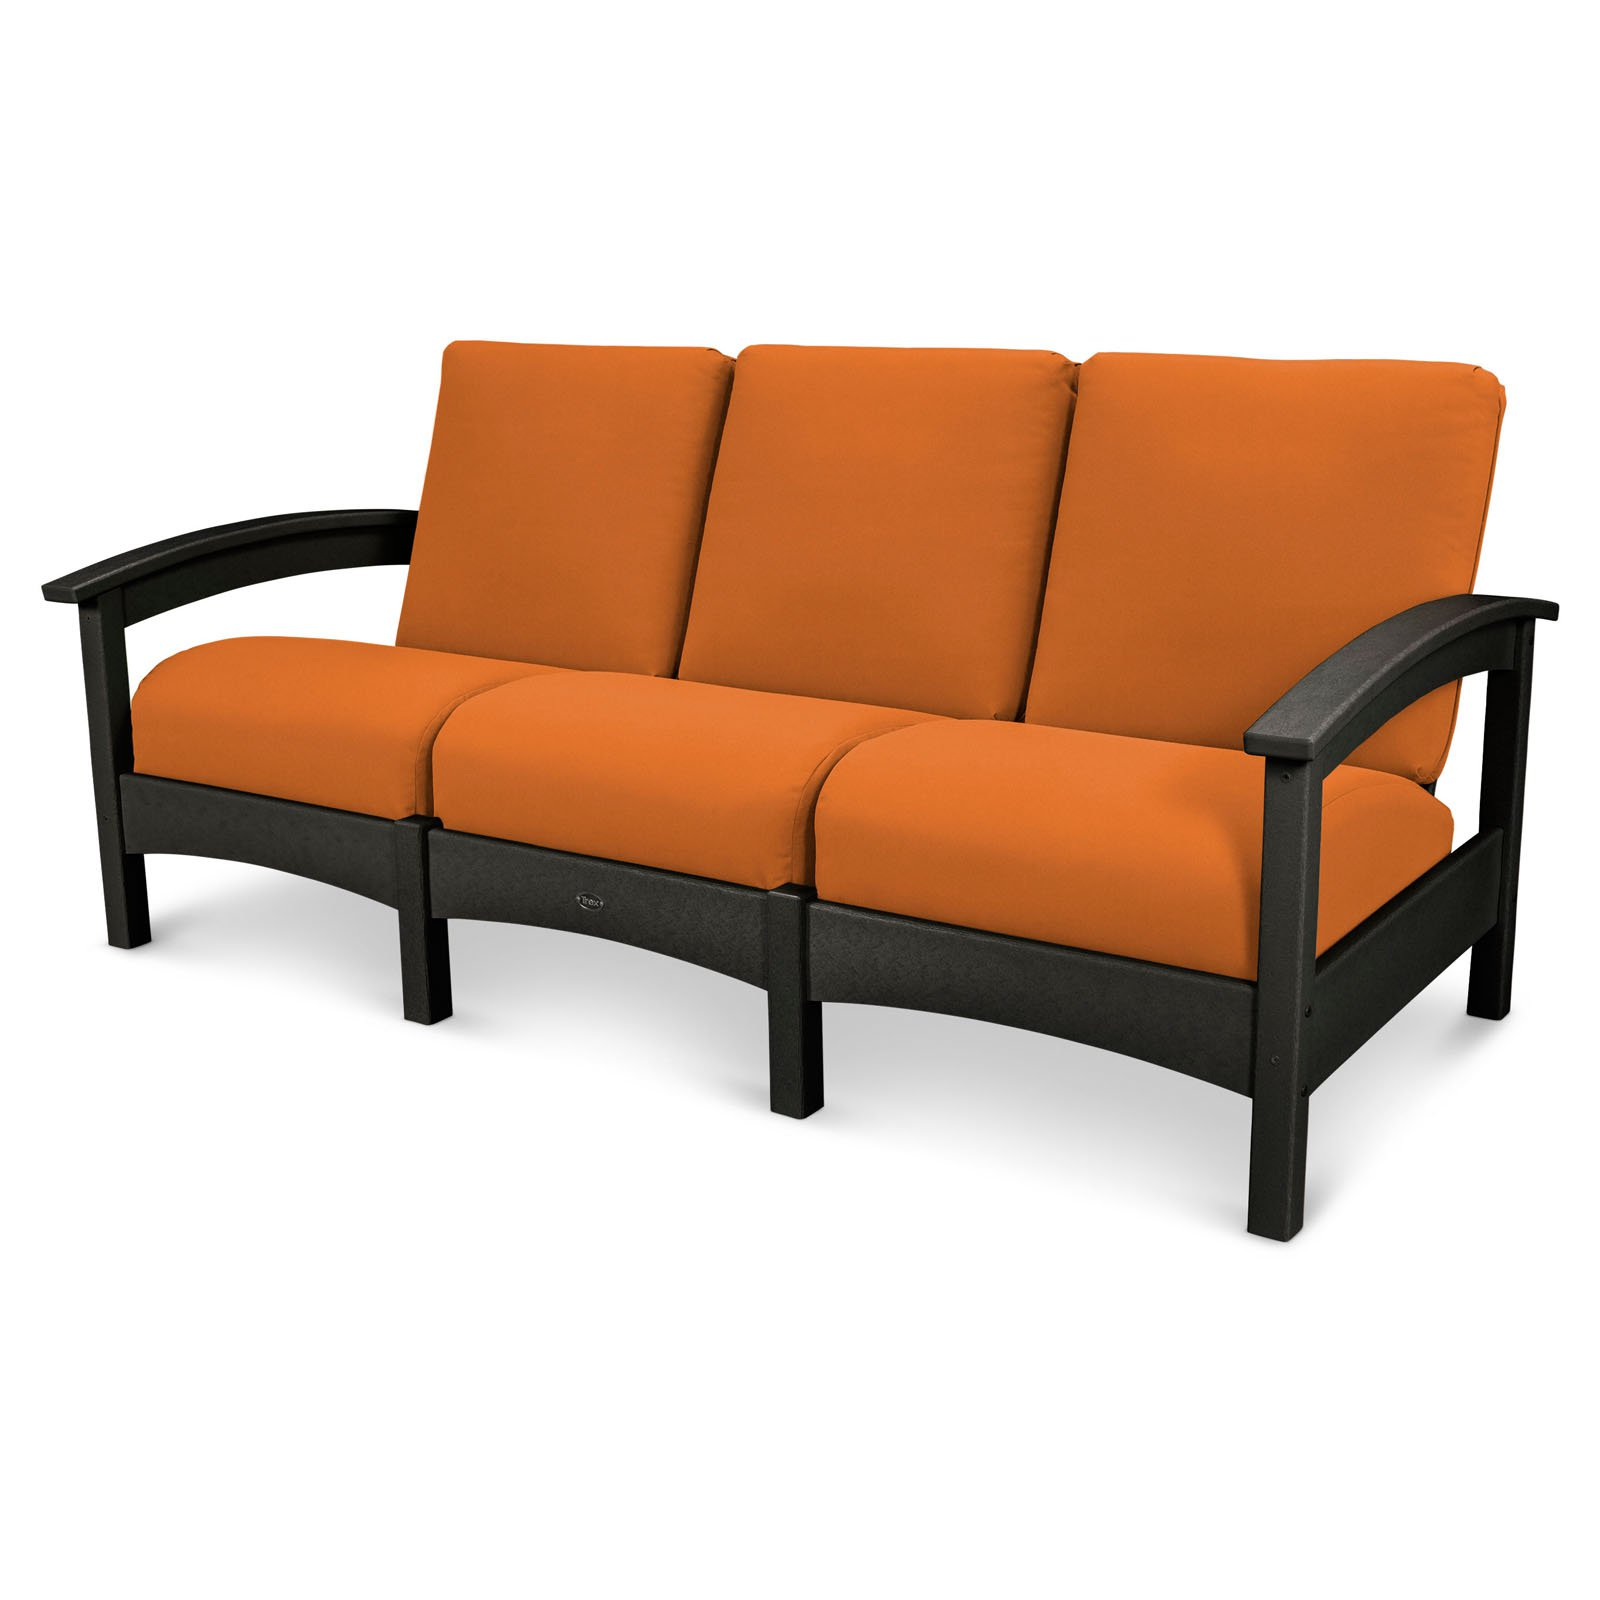 Trex Outdoor Furniture Recycled Plastic Rockport Club Sofa